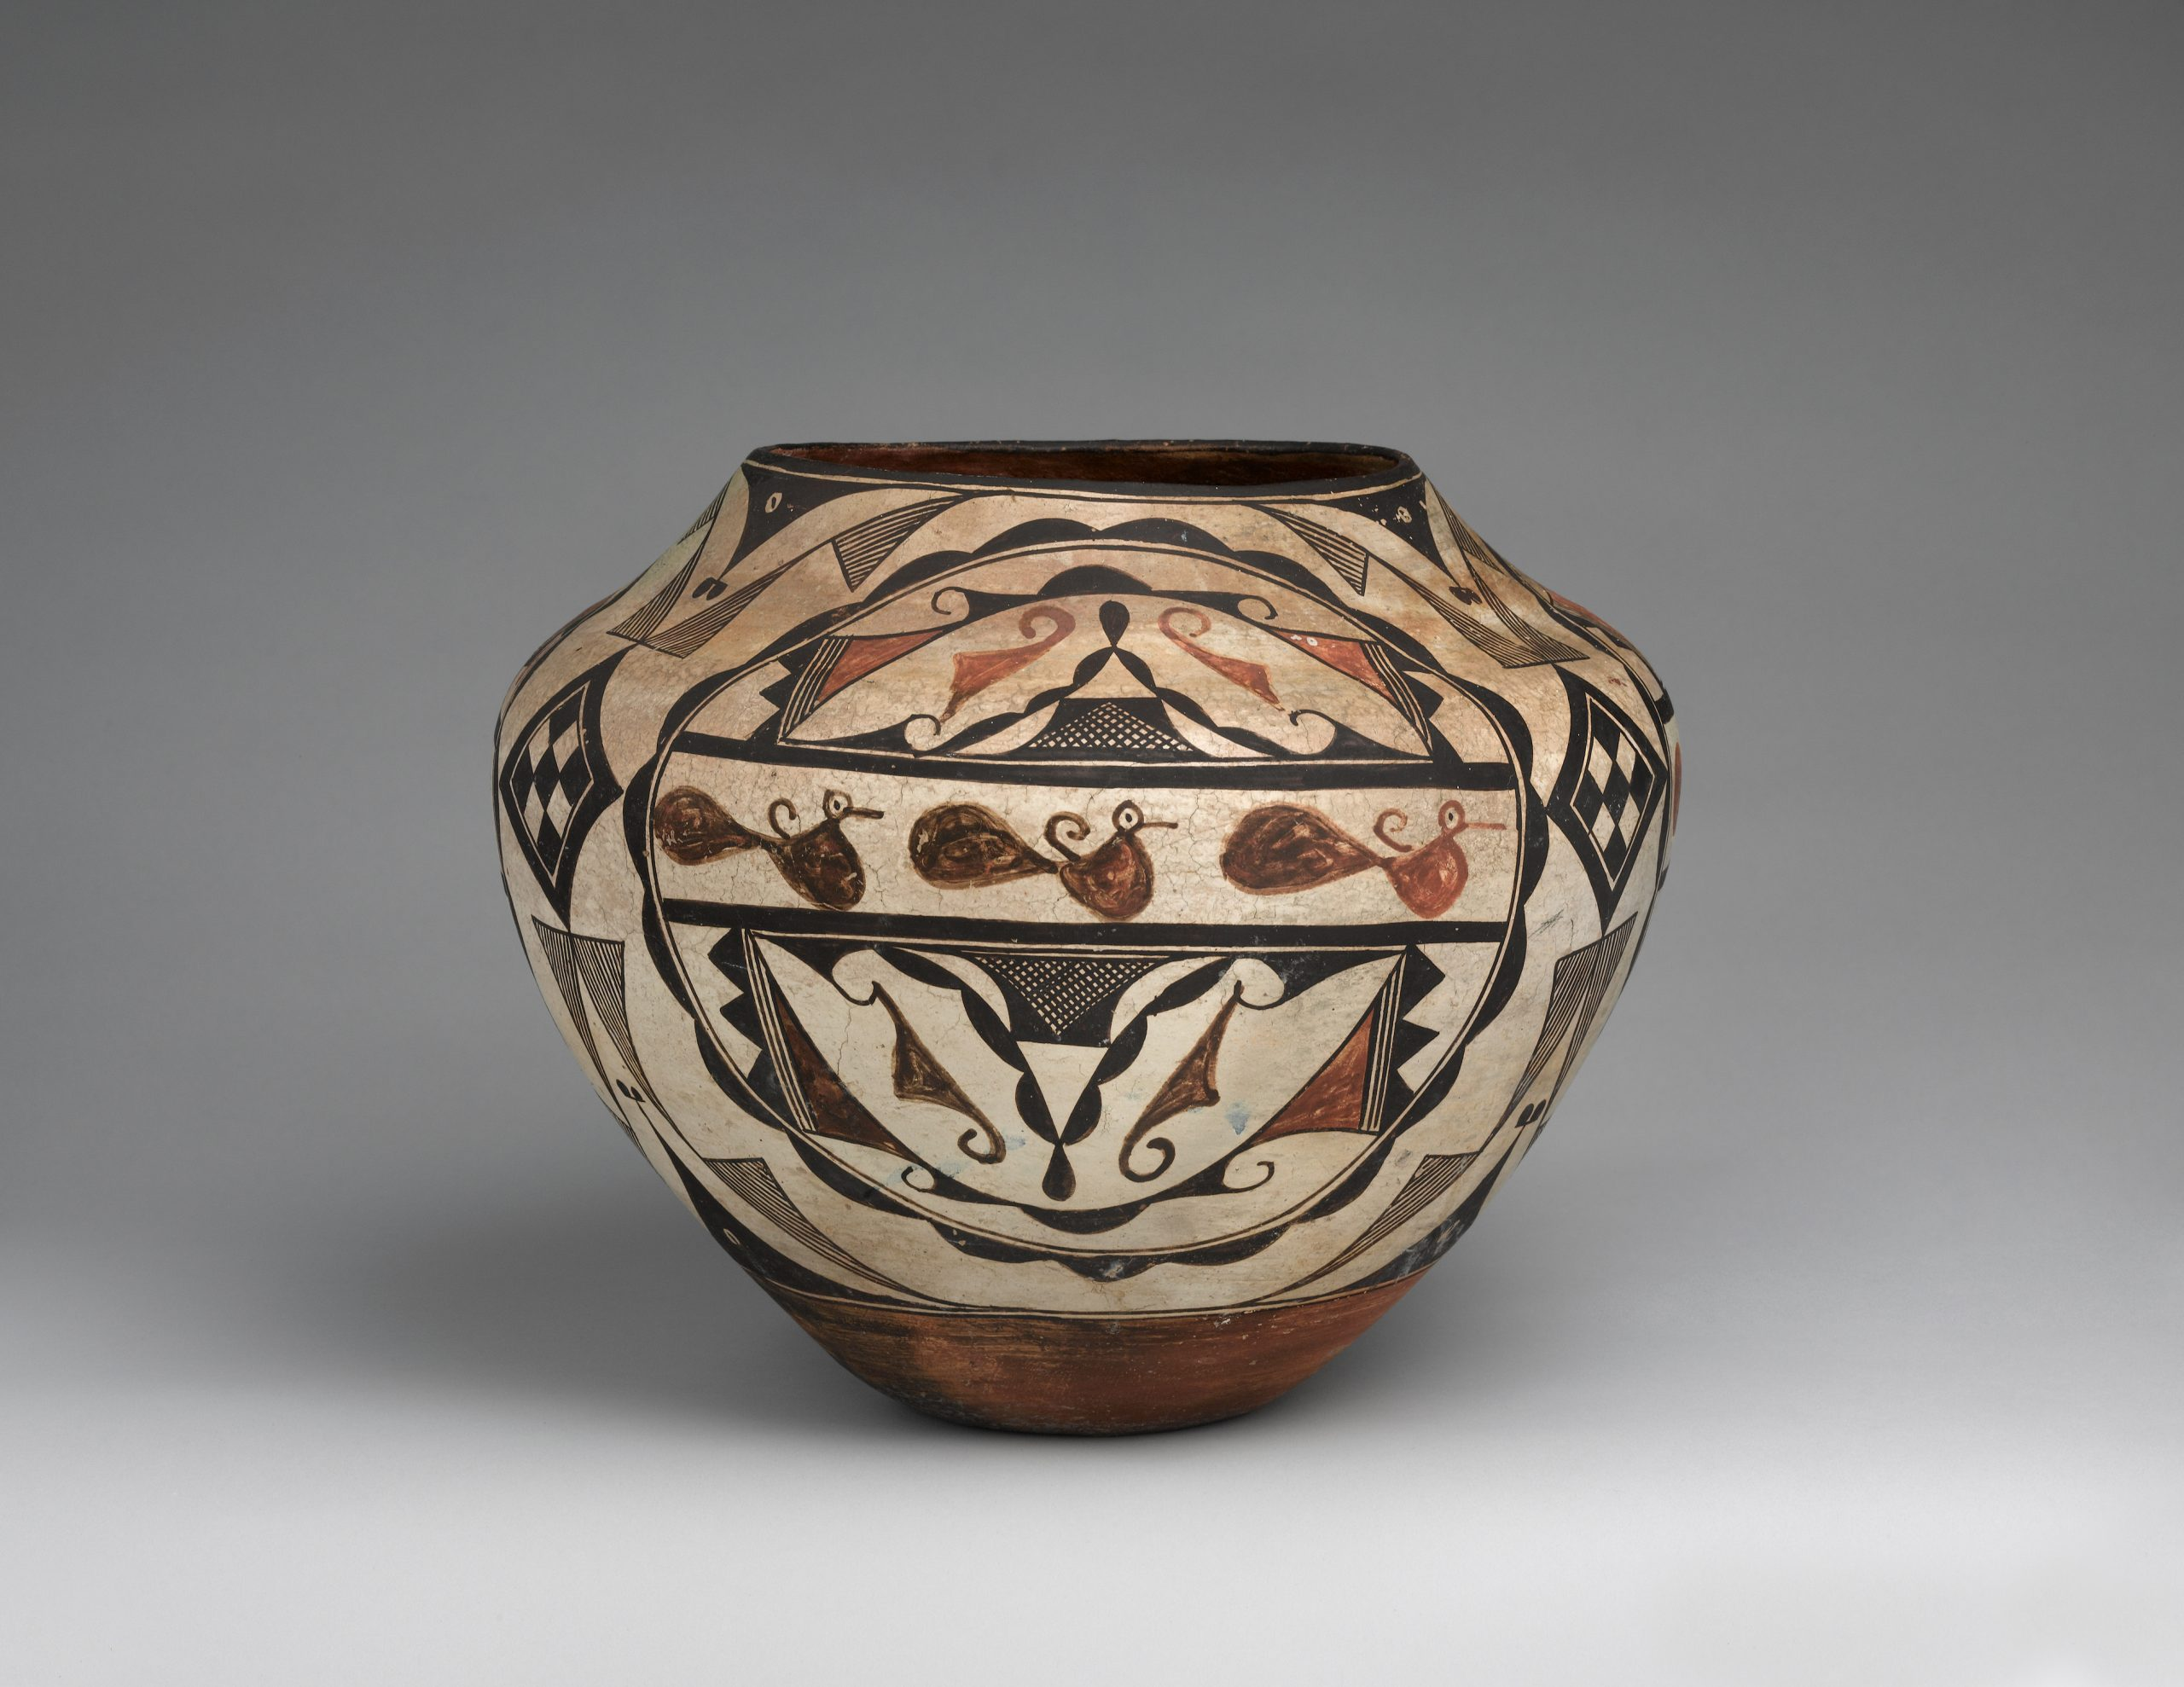 Beige Acoma pot with various geometric shapes and patterns in brown and black, and a row of three identical animals in the center.